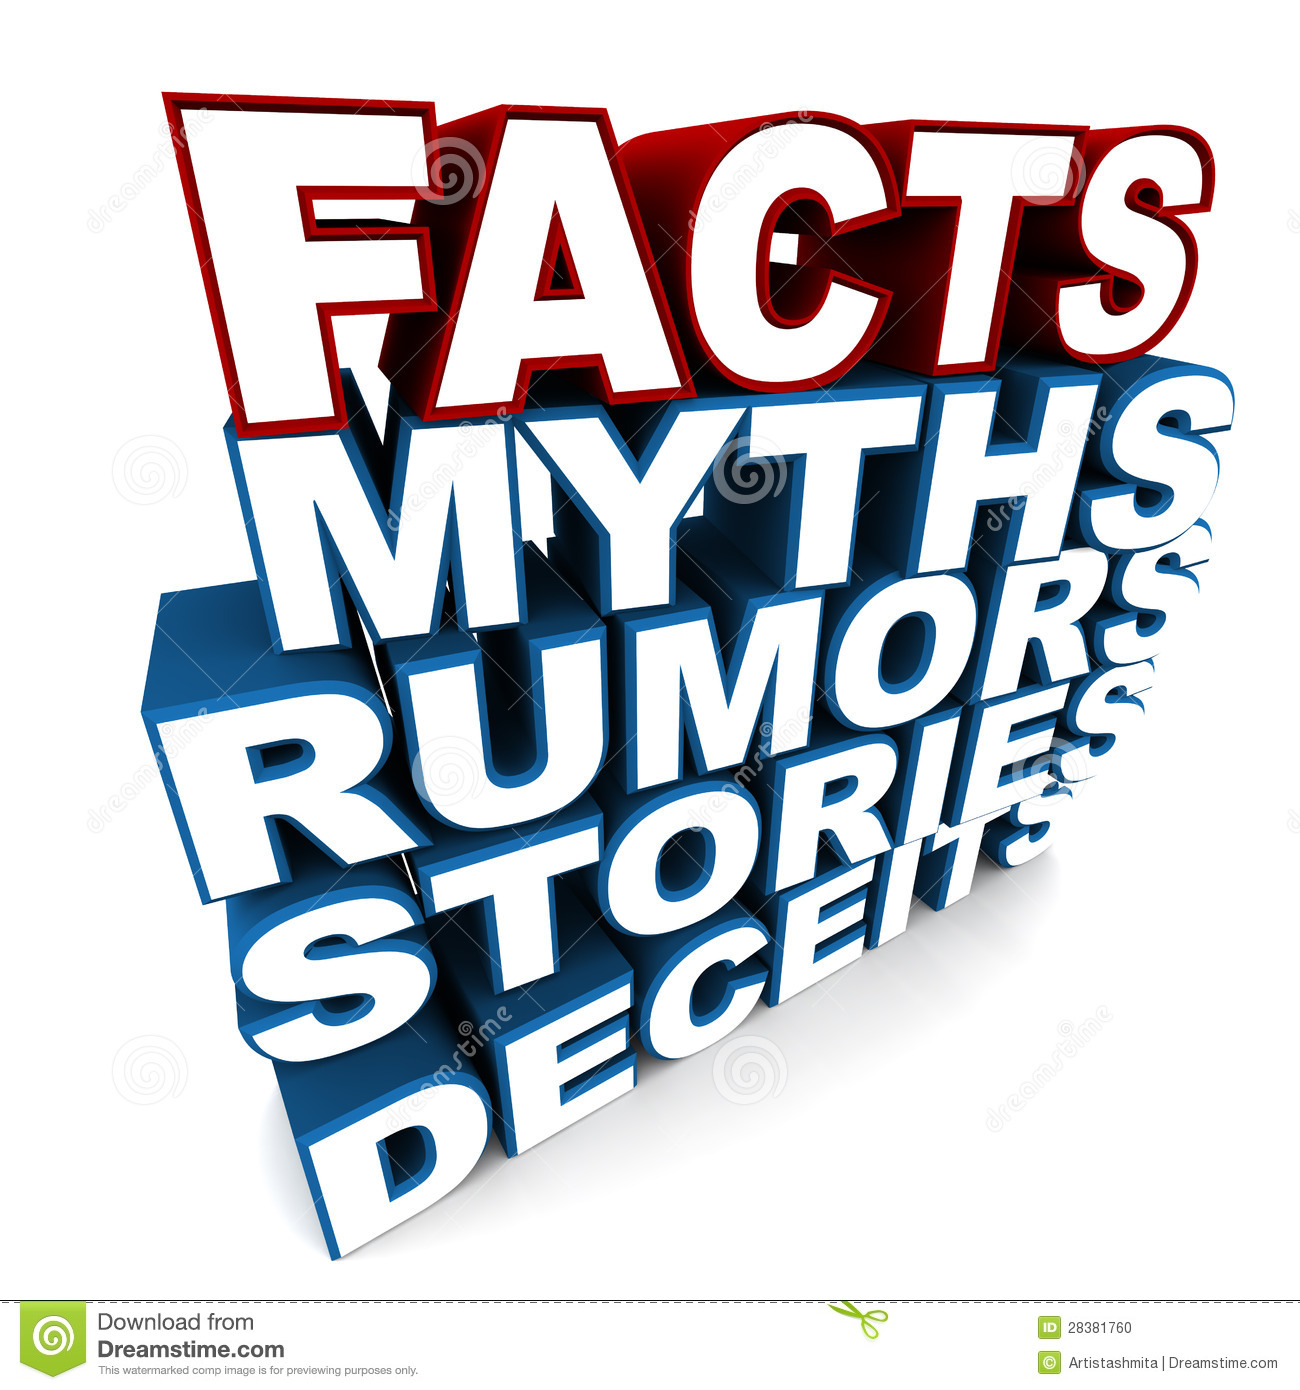 Dreams nightmares the myths facts